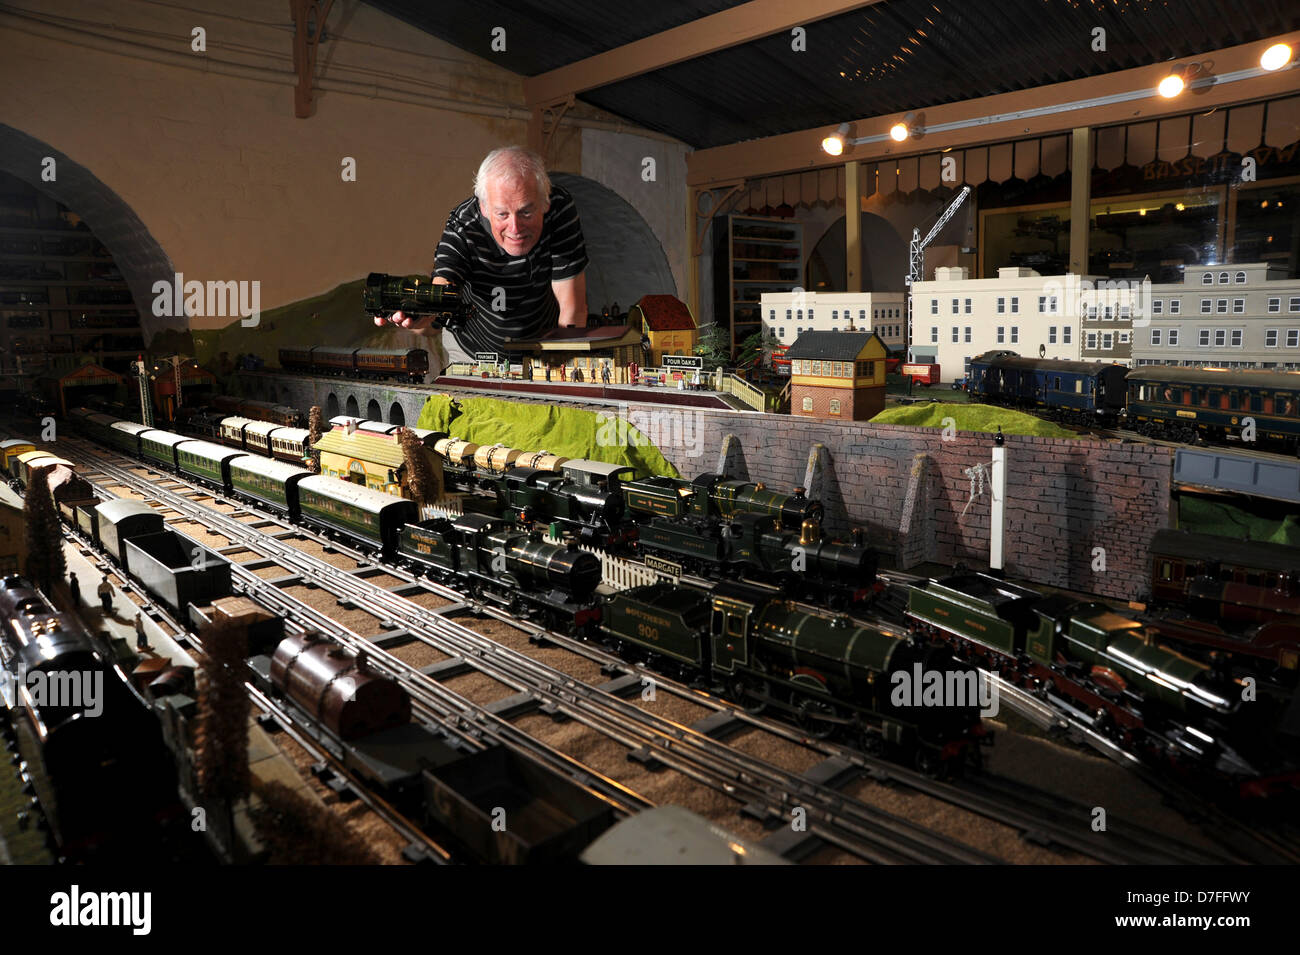 Brighton, Sussex, UK. 7th May 2013. Chris Littledale places a Hornby model train on the track at Brighton Toy Museum Stock Photo